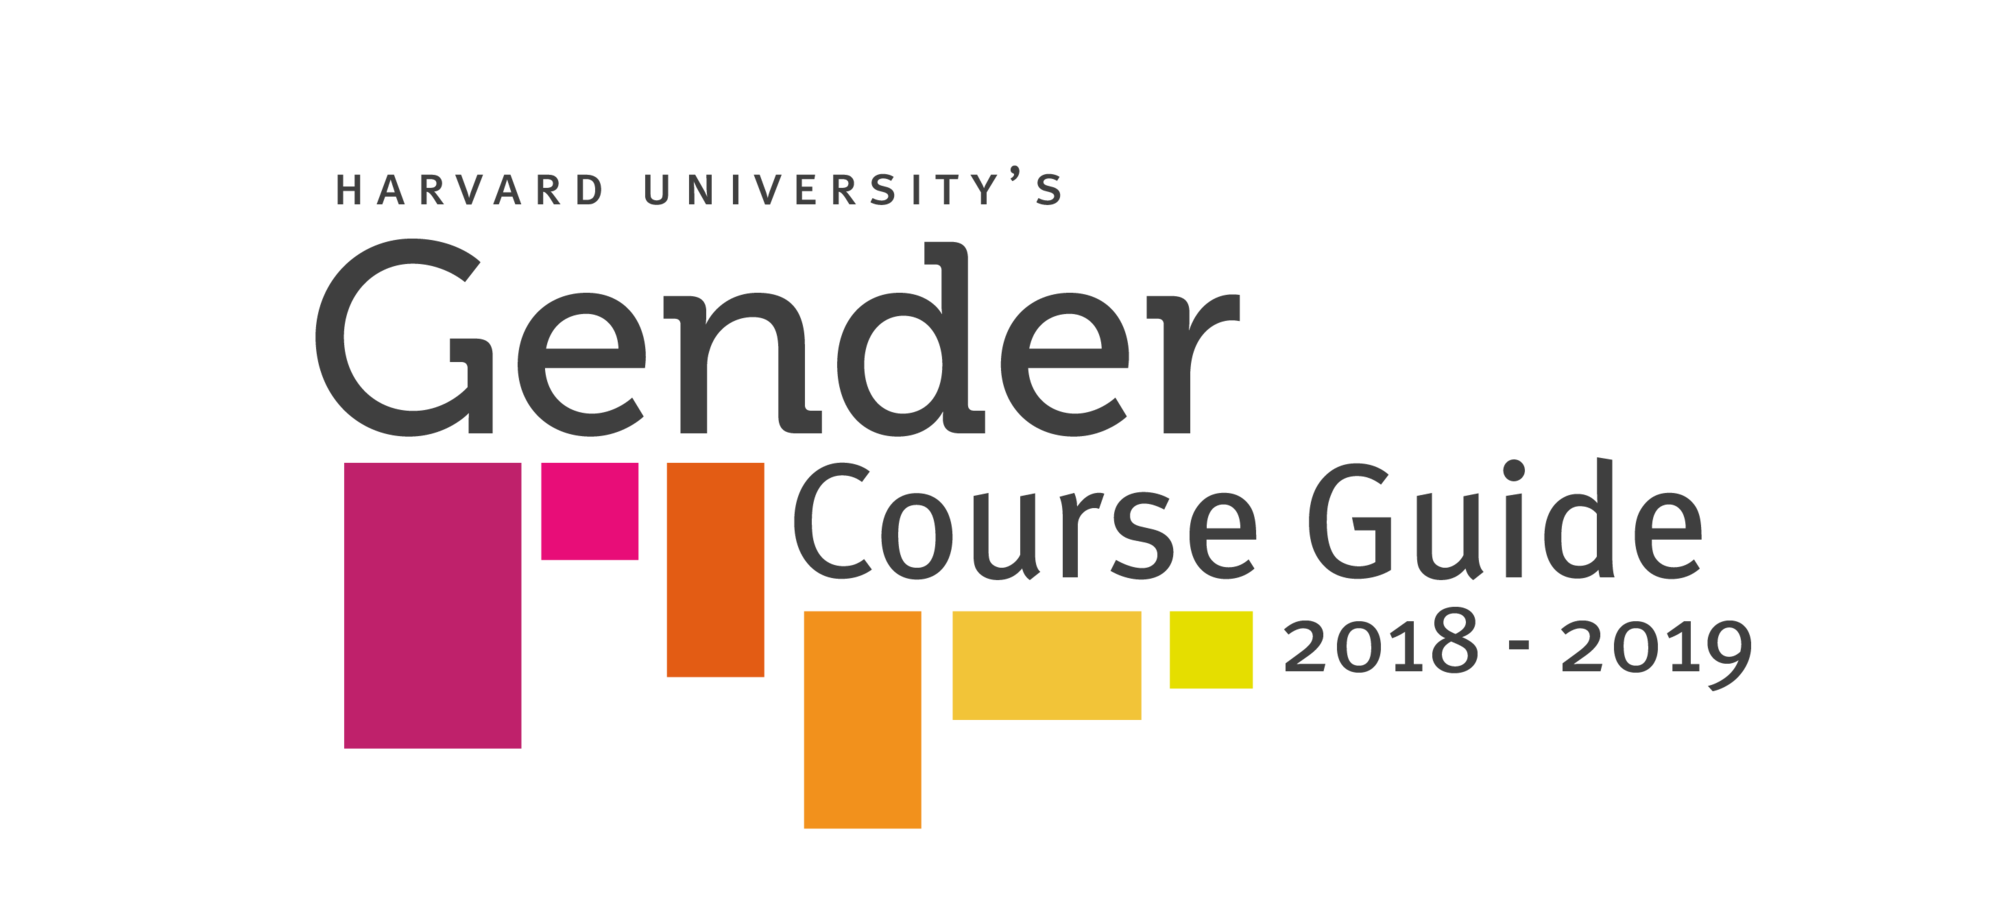 Harvard Gender Course Guide 2018-2019